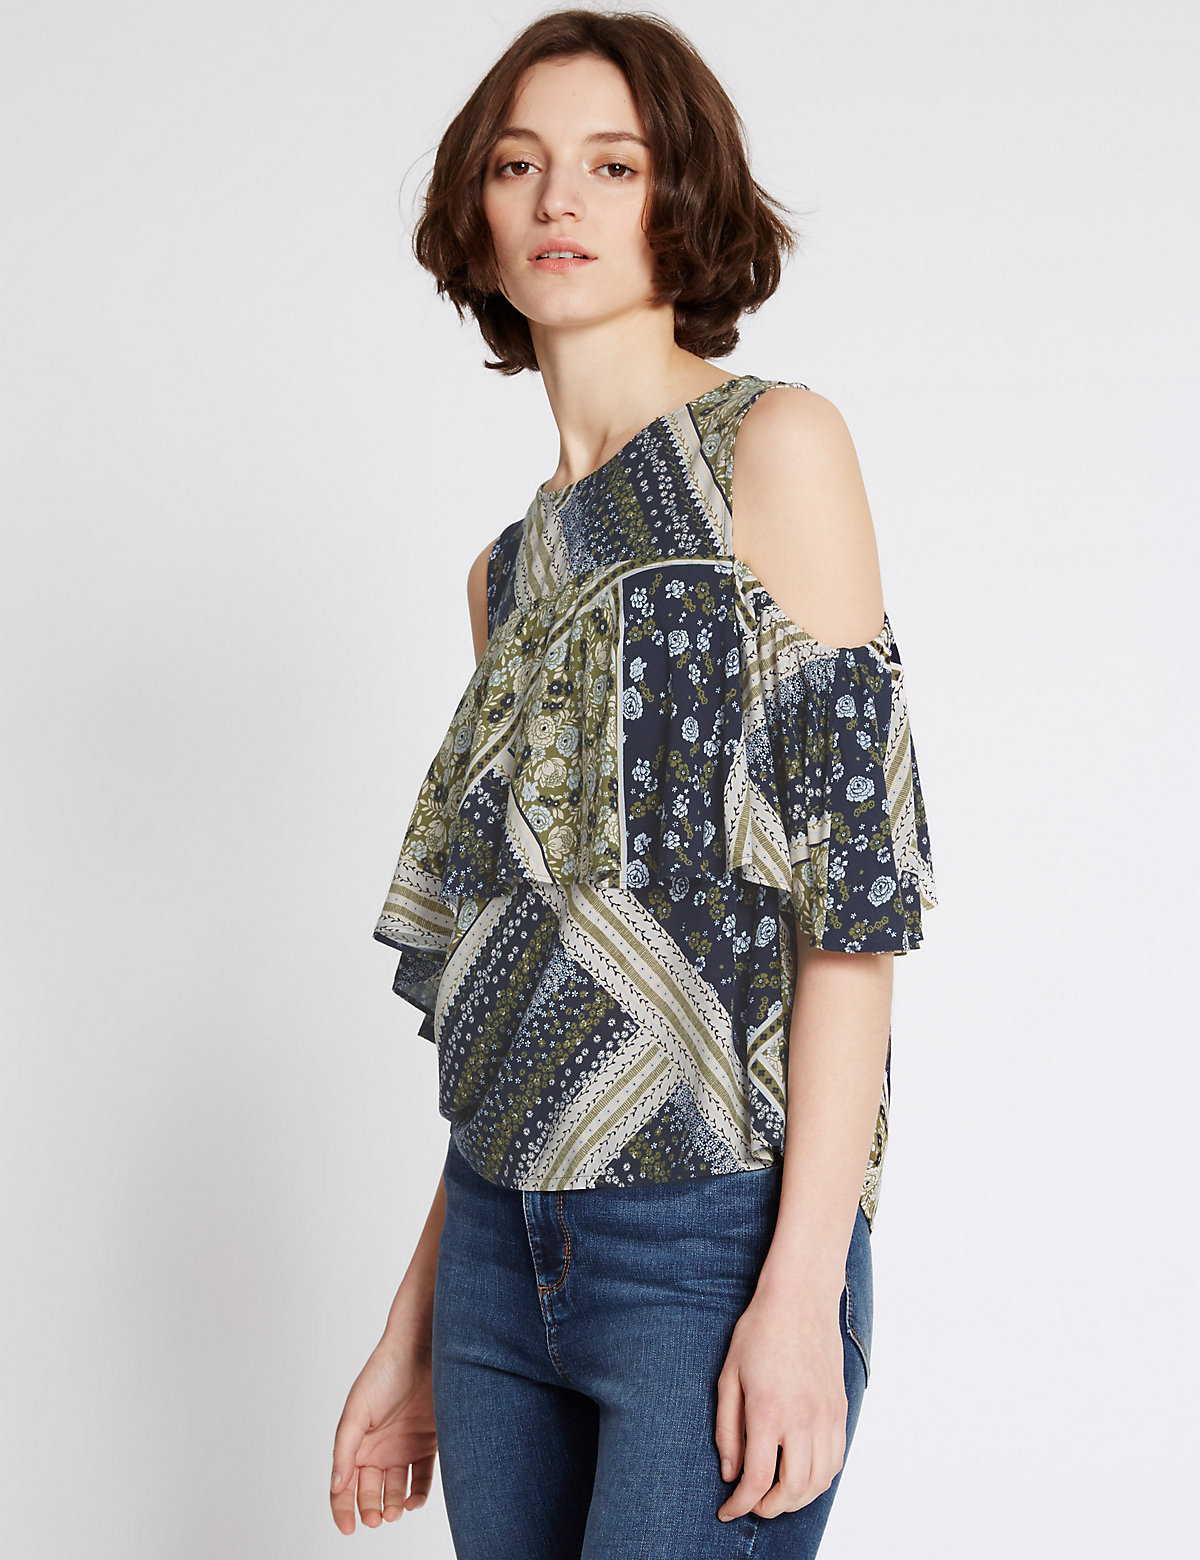 Limited Edition Patchwork Round Neck Sleeveless Shell Top Marks and Spencer P22500969